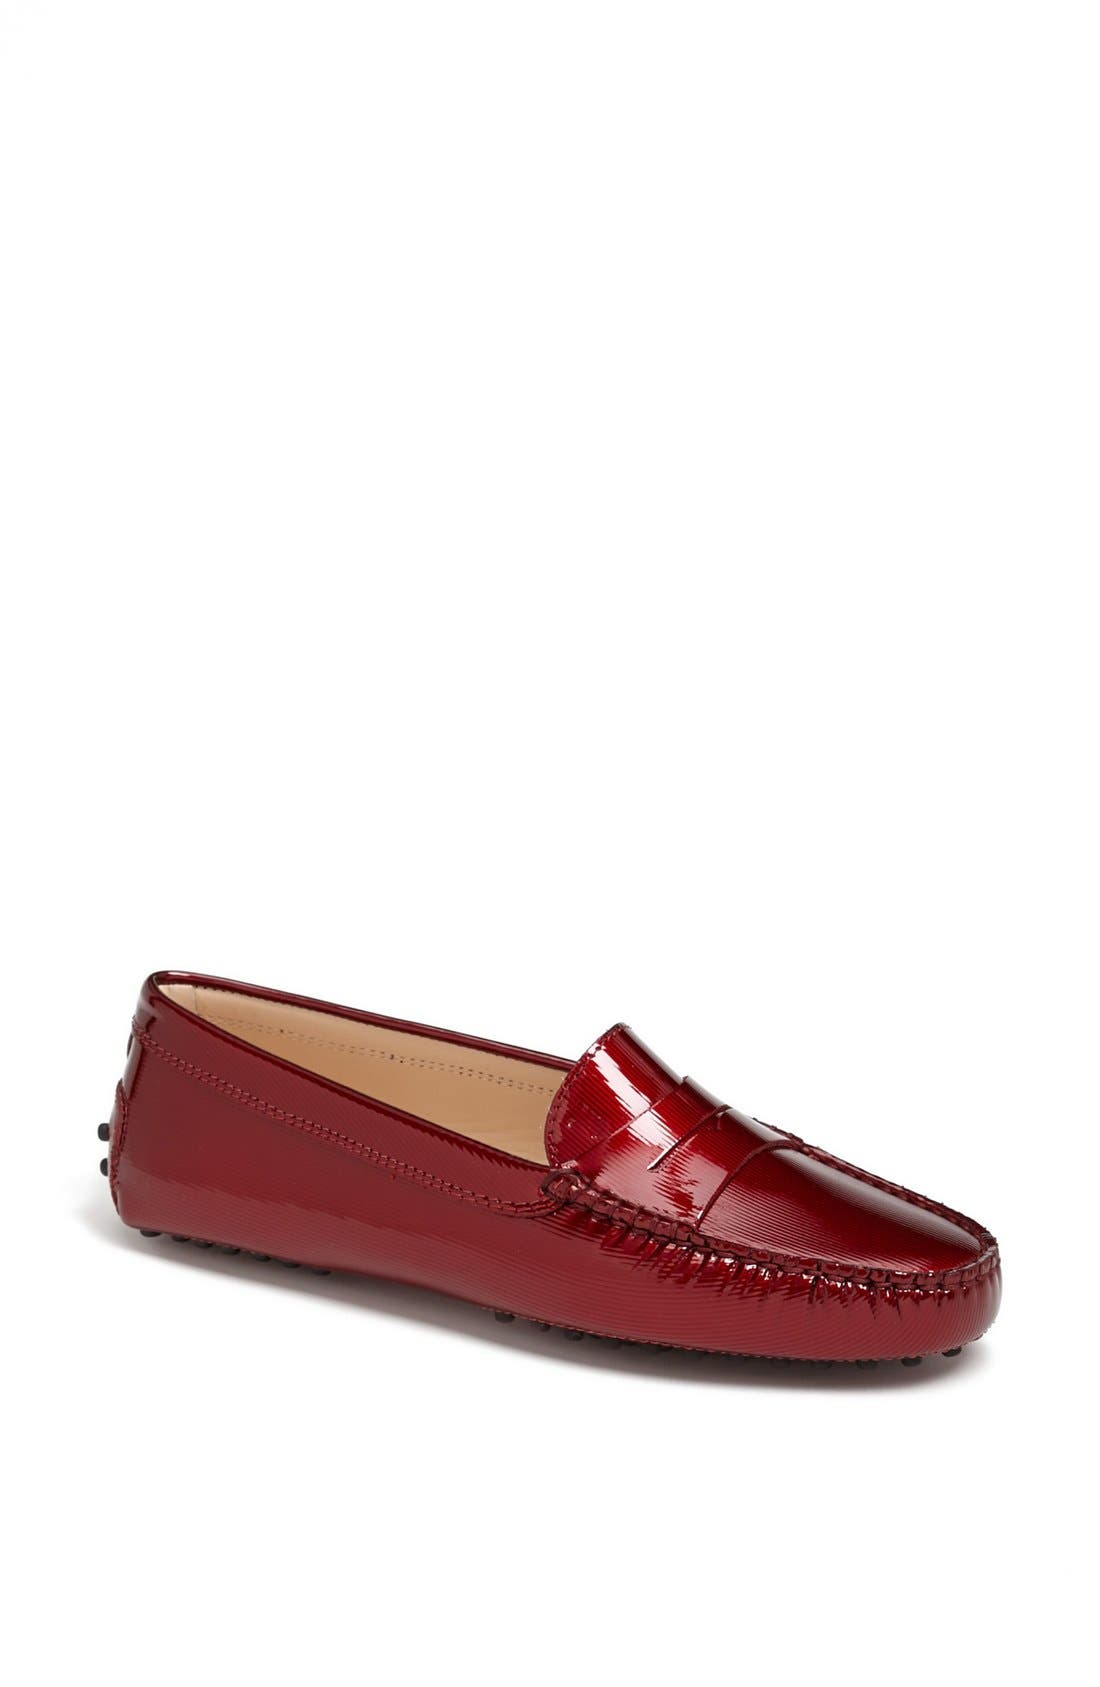 Main Image - Tod's 'Gommini' Penny Front Driving Moccasin